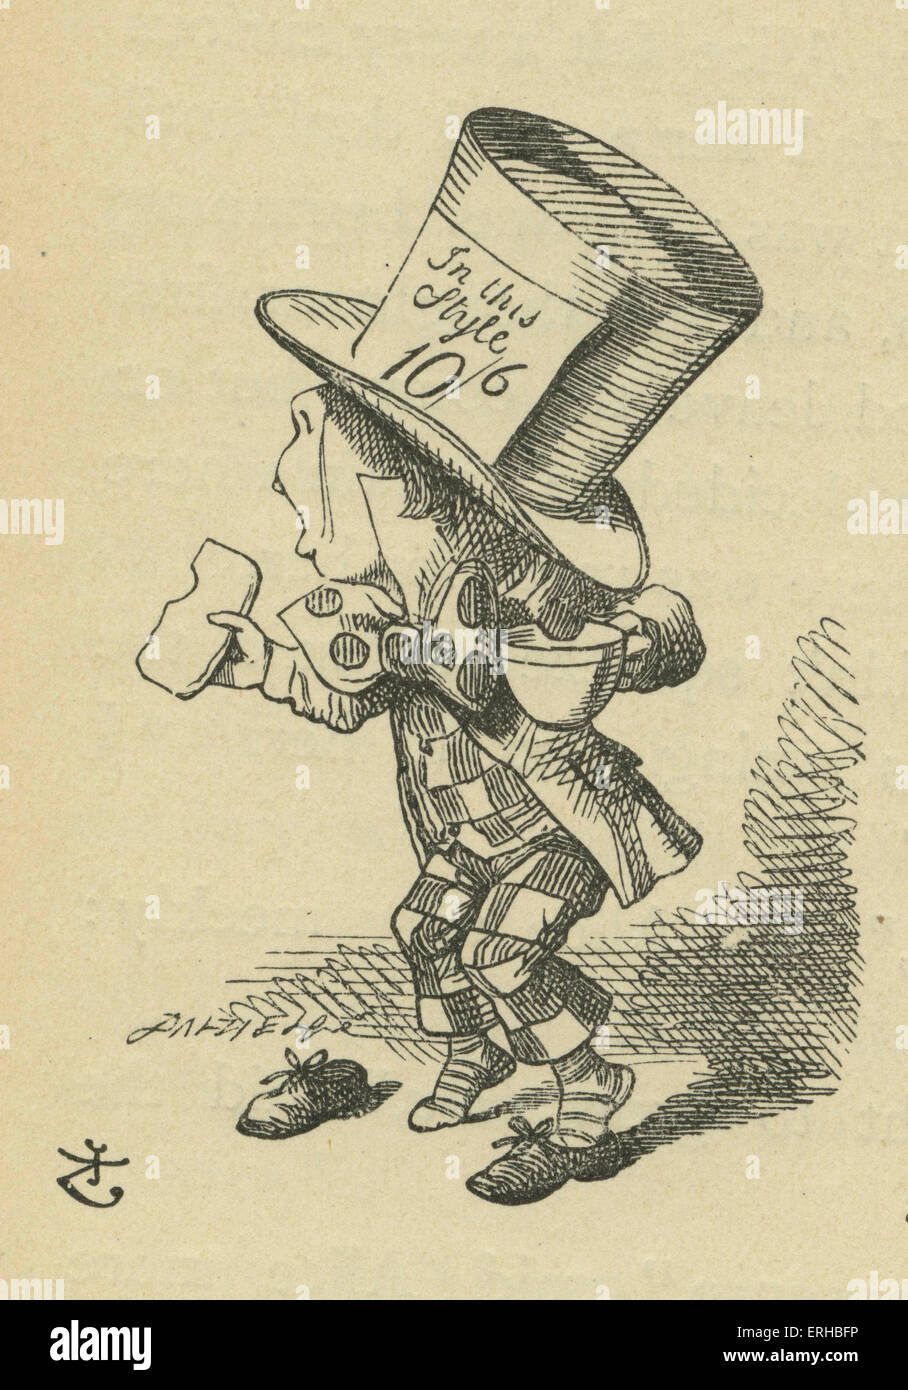 The Mad Hatter, Lewis Carroll's (1832-1898) book 'Alice's Adventures in Wonderland'. Illustrated - Stock Image